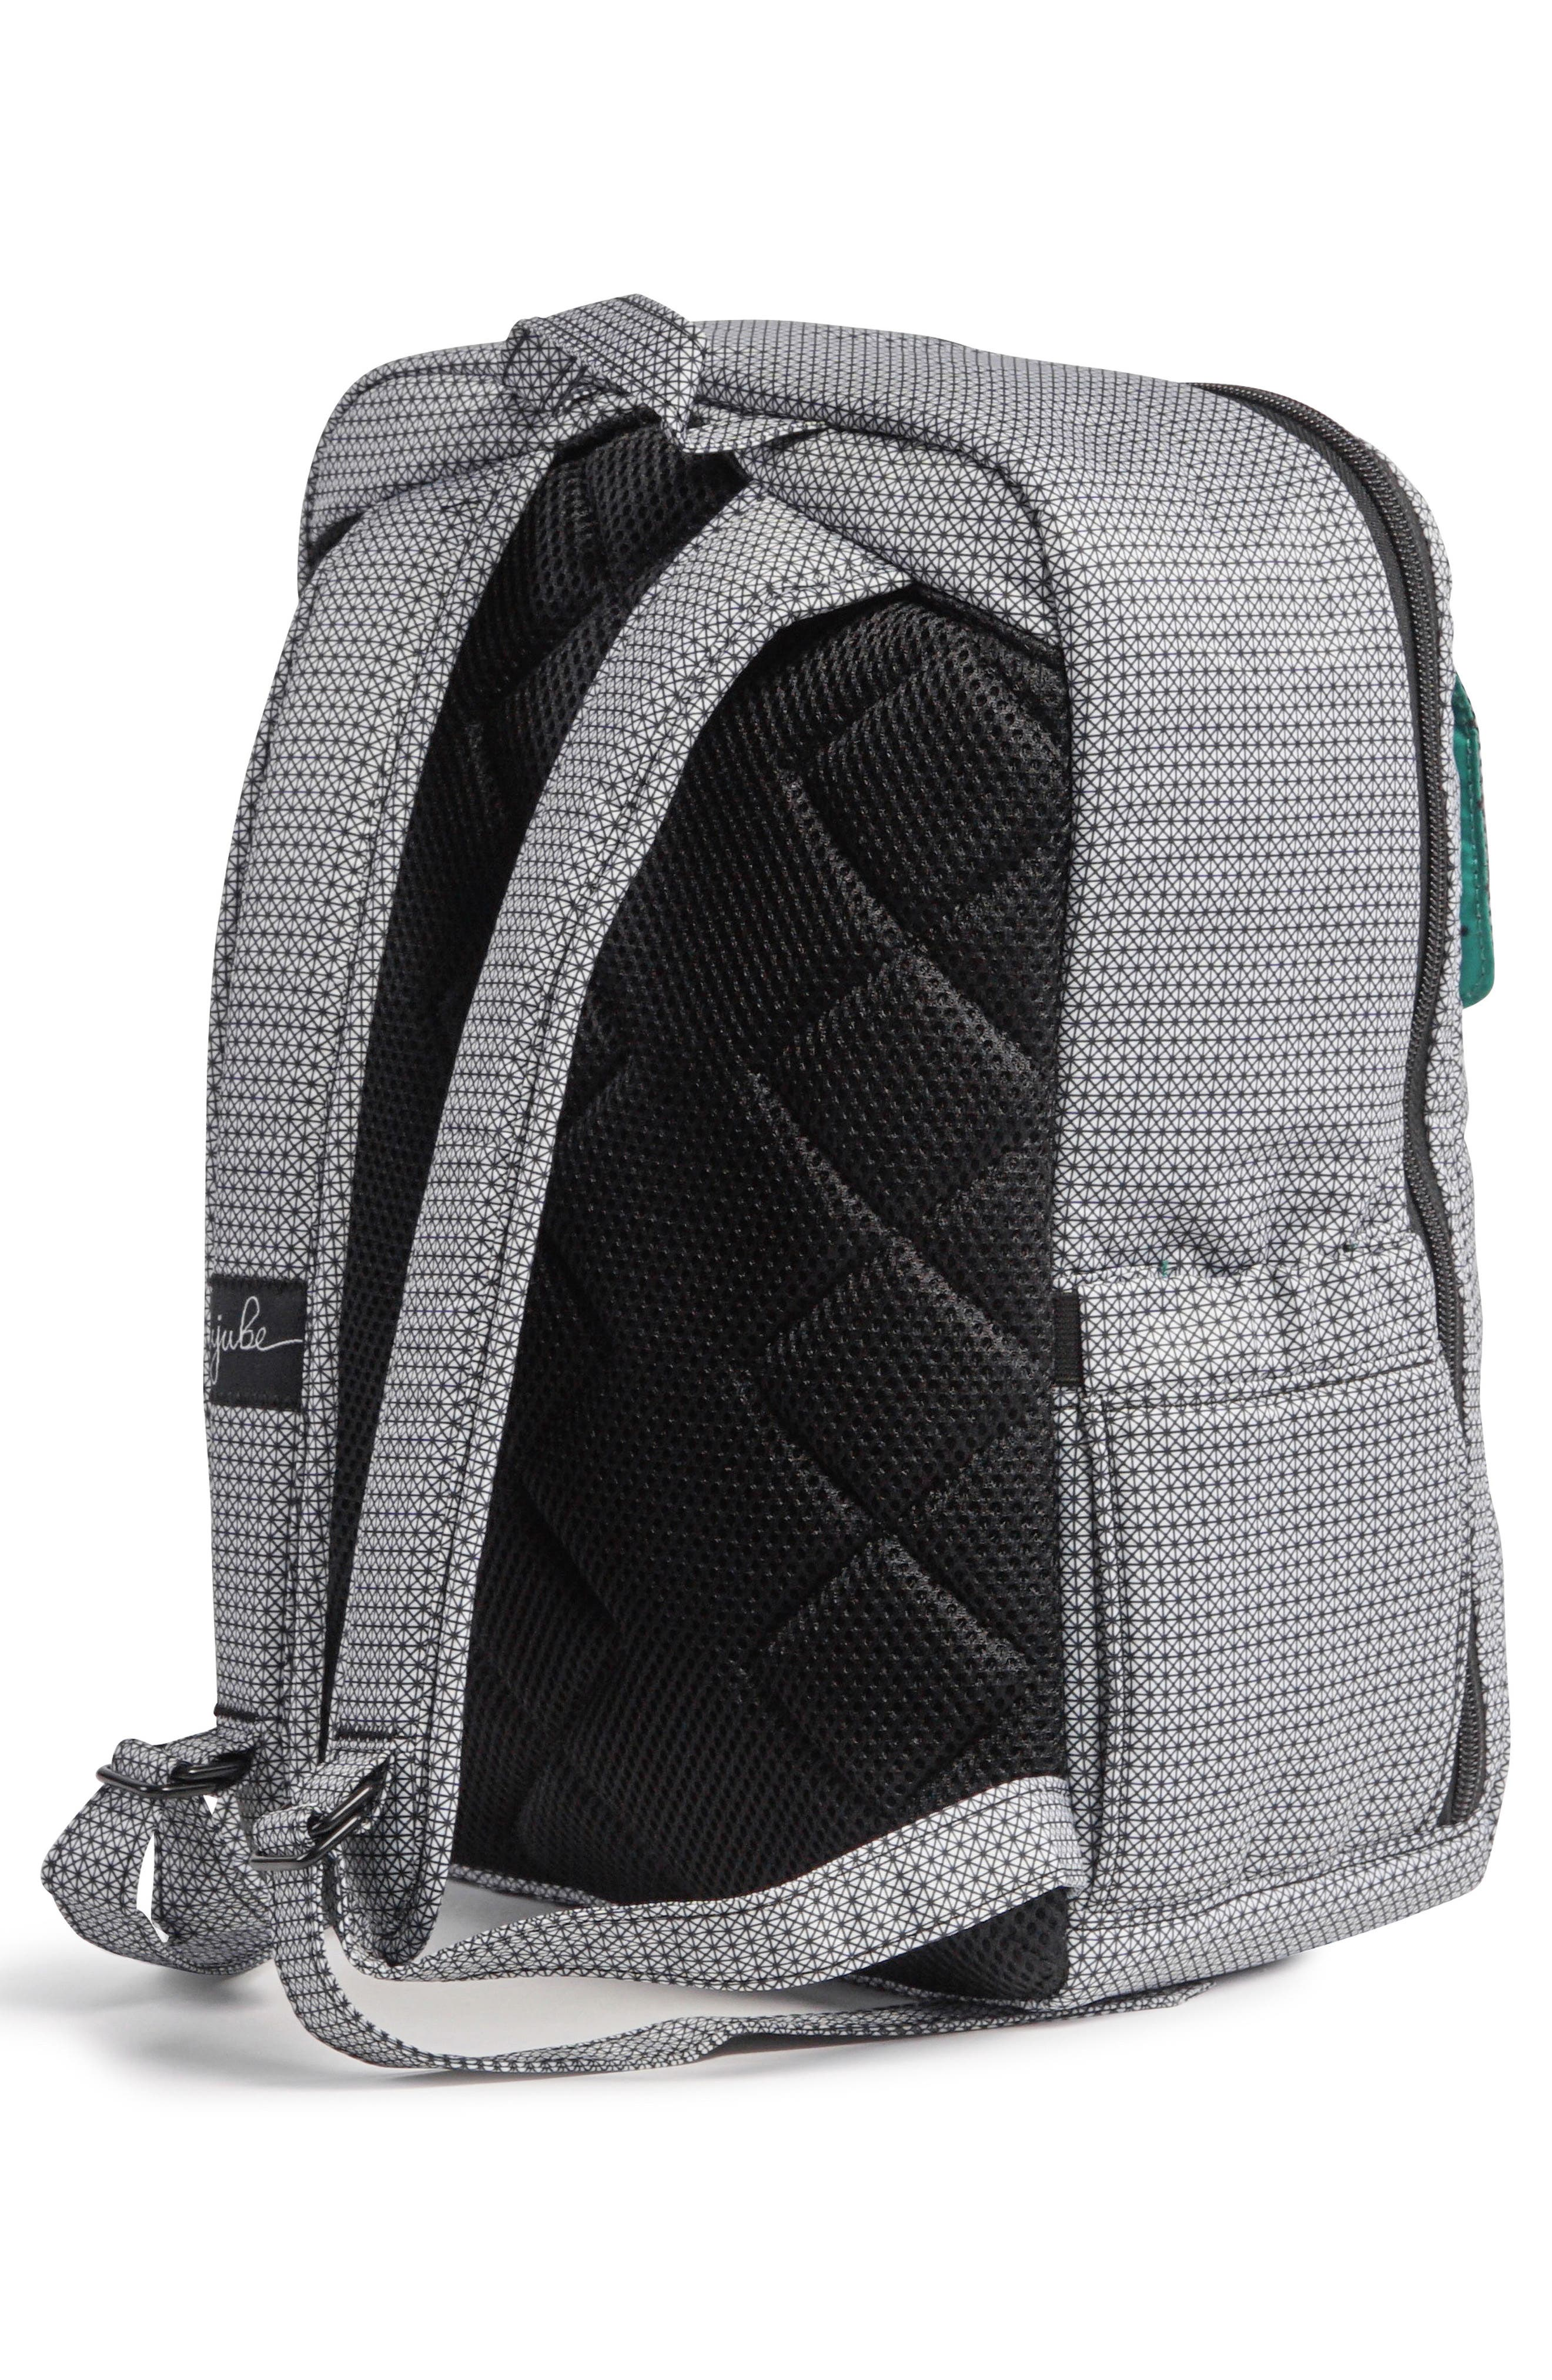 'Mini Be - Onyx Collection' Backpack,                             Alternate thumbnail 2, color,                             BLACK MATRIX